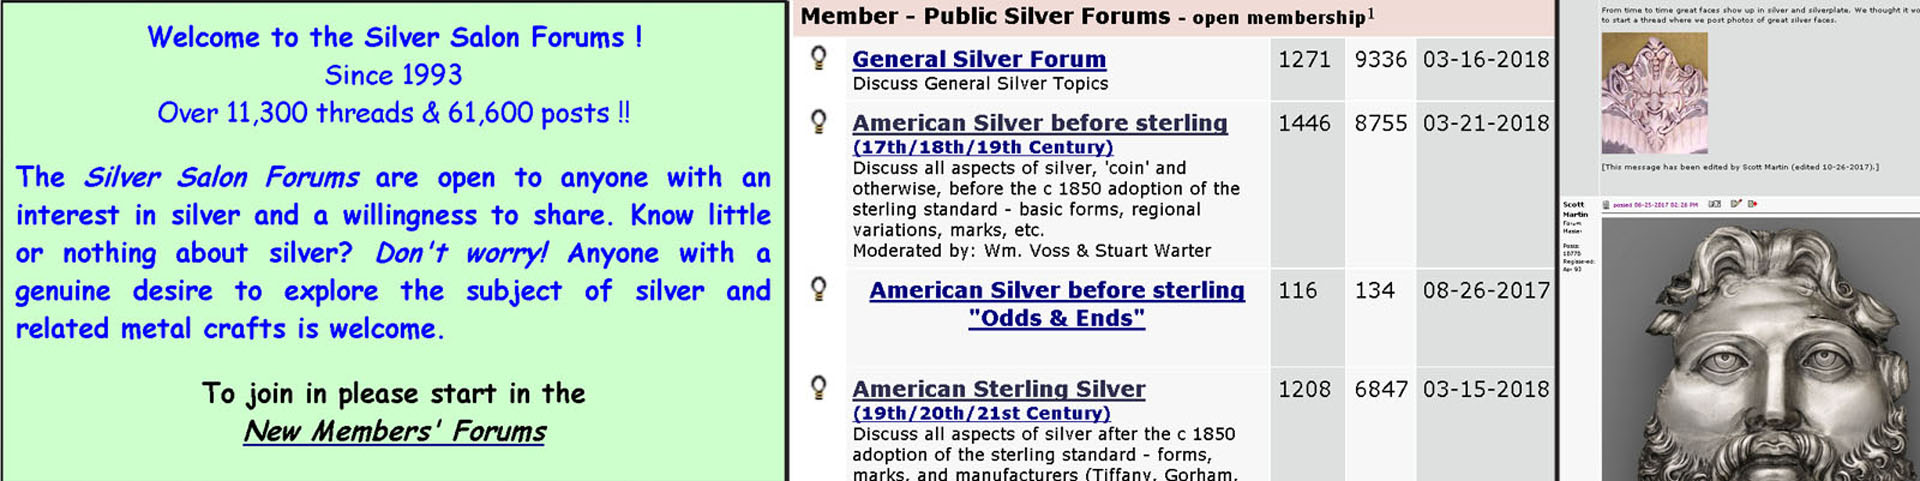 Silver Salon Forums